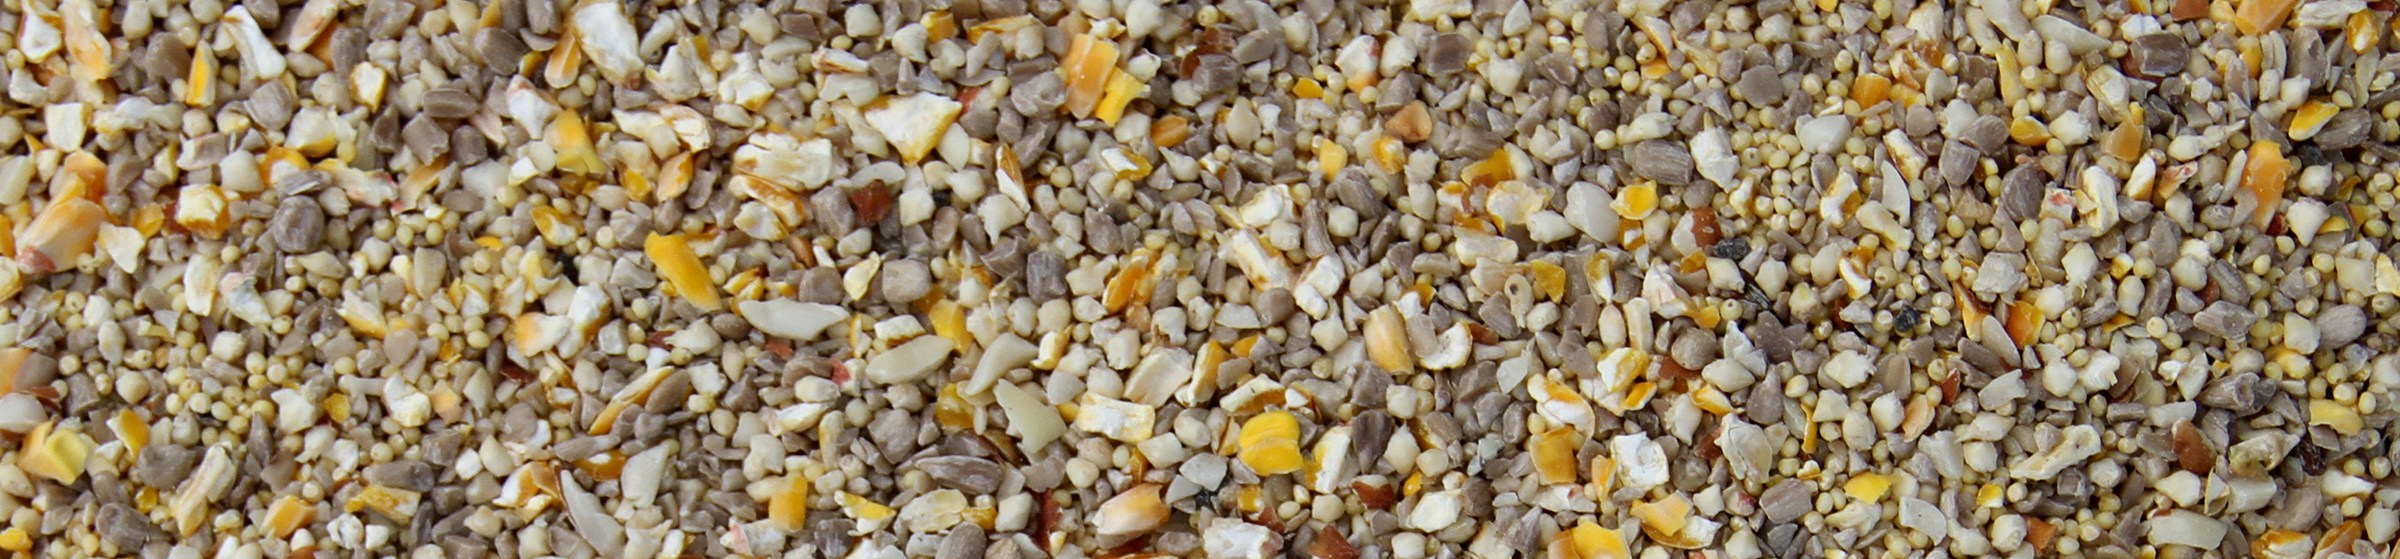 Image of no waste wild bird food.